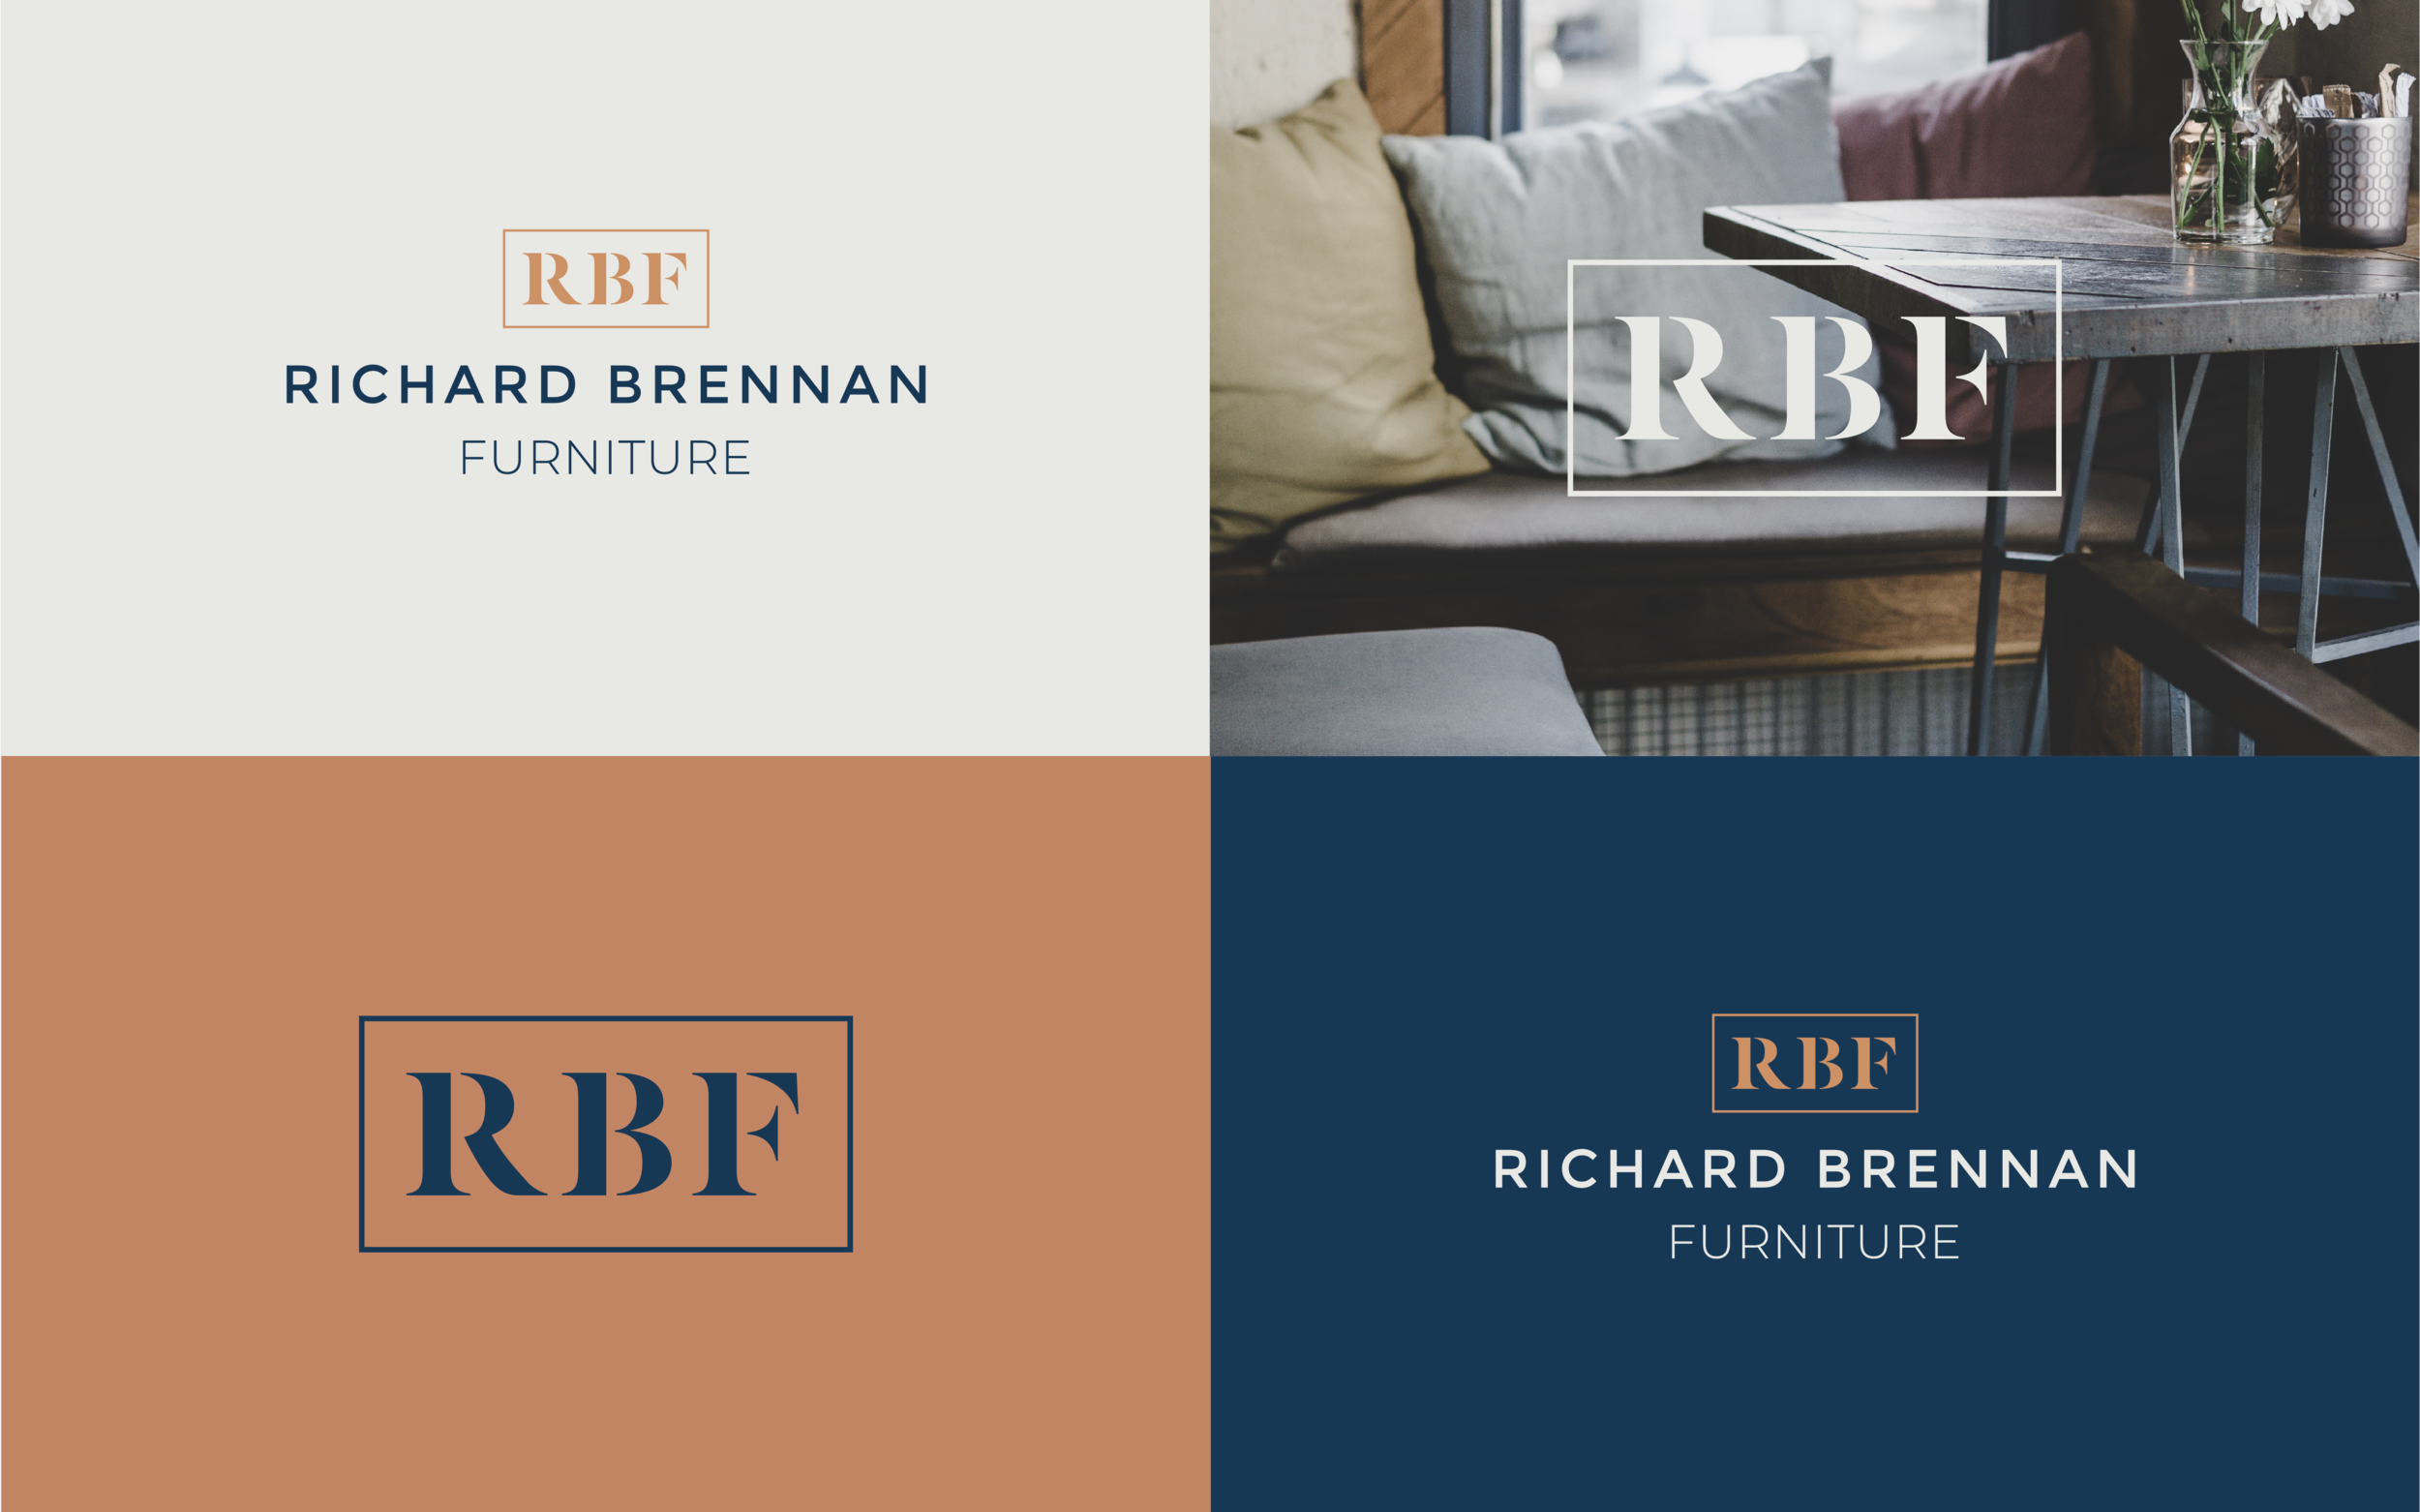 BS_RB FURNITURE5.png